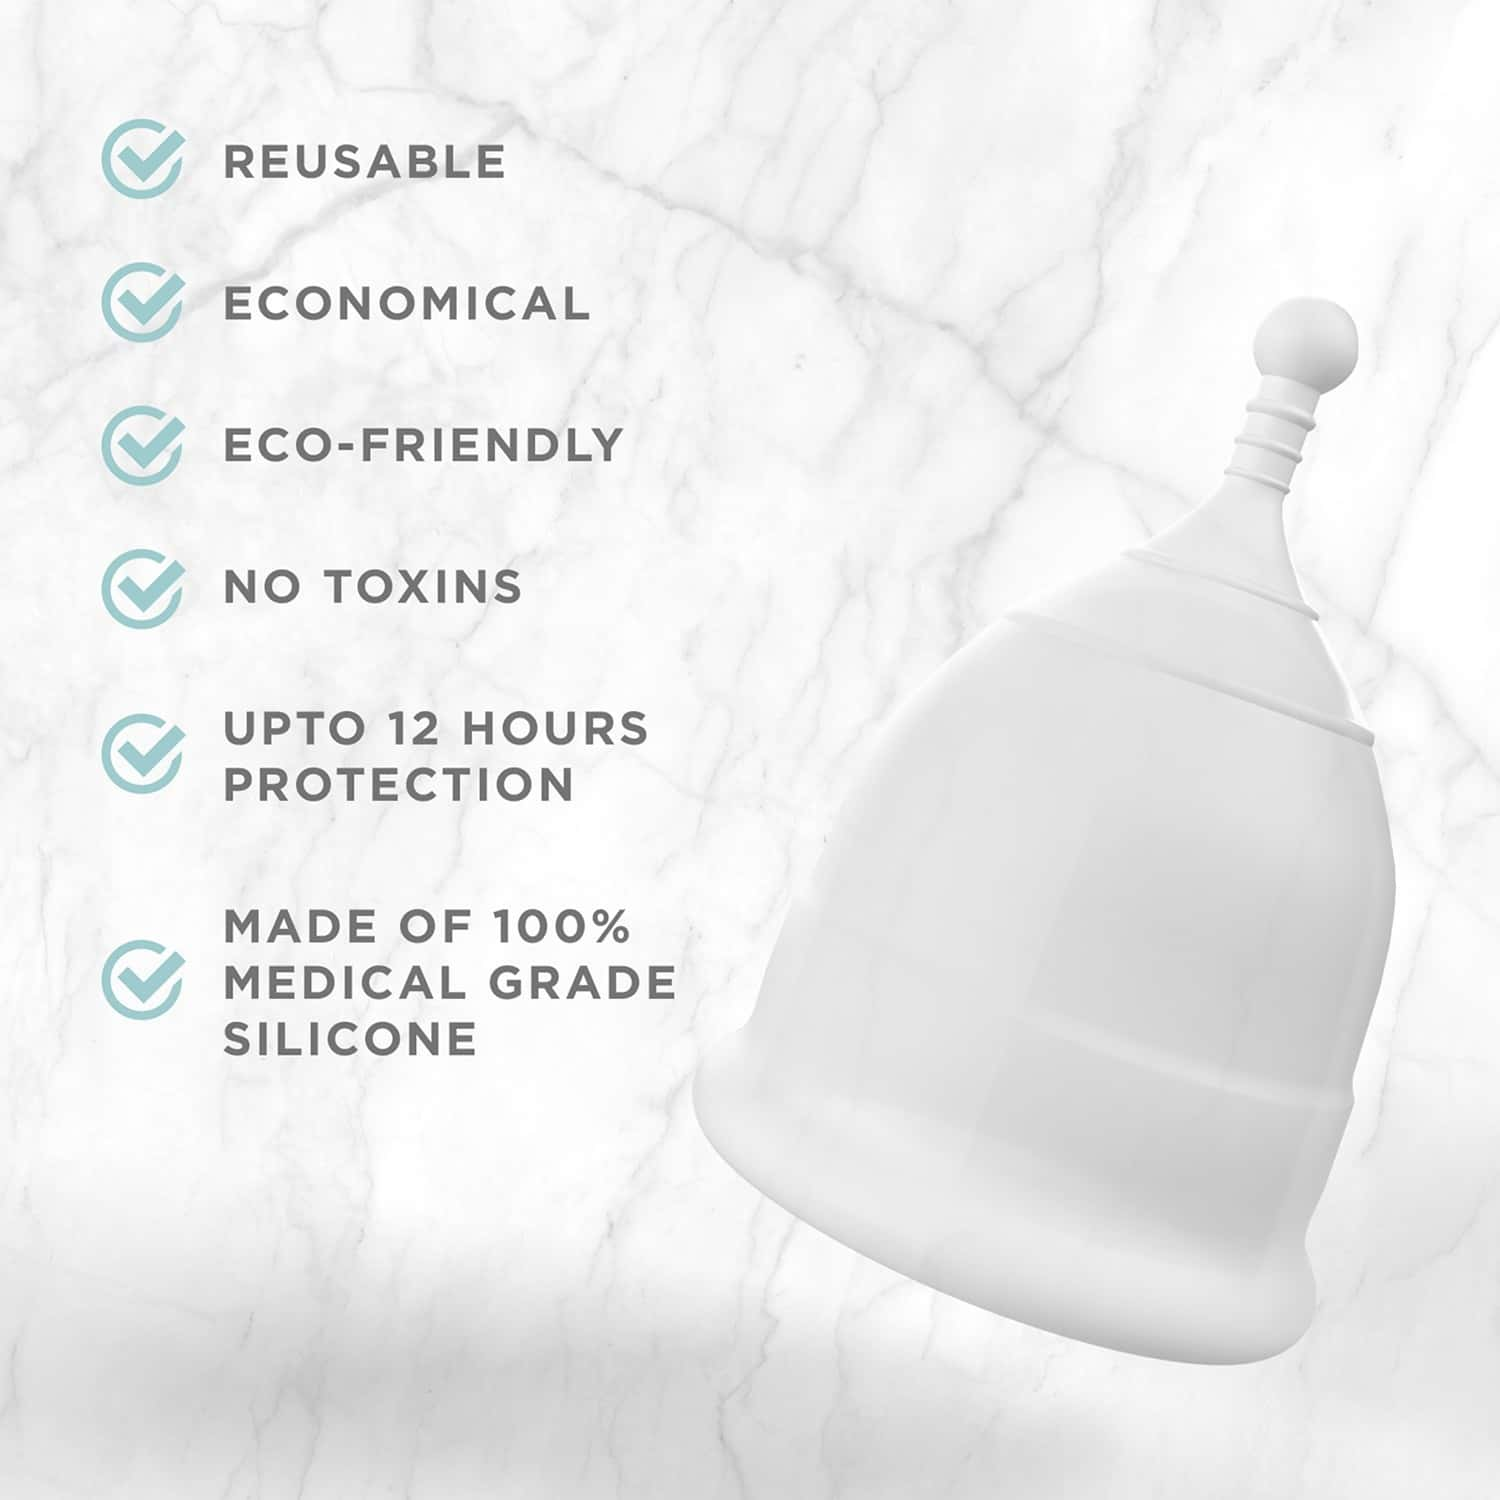 Pee Safe Reusable Menstrual Cup With Medical Grade Silcone For Women - Large